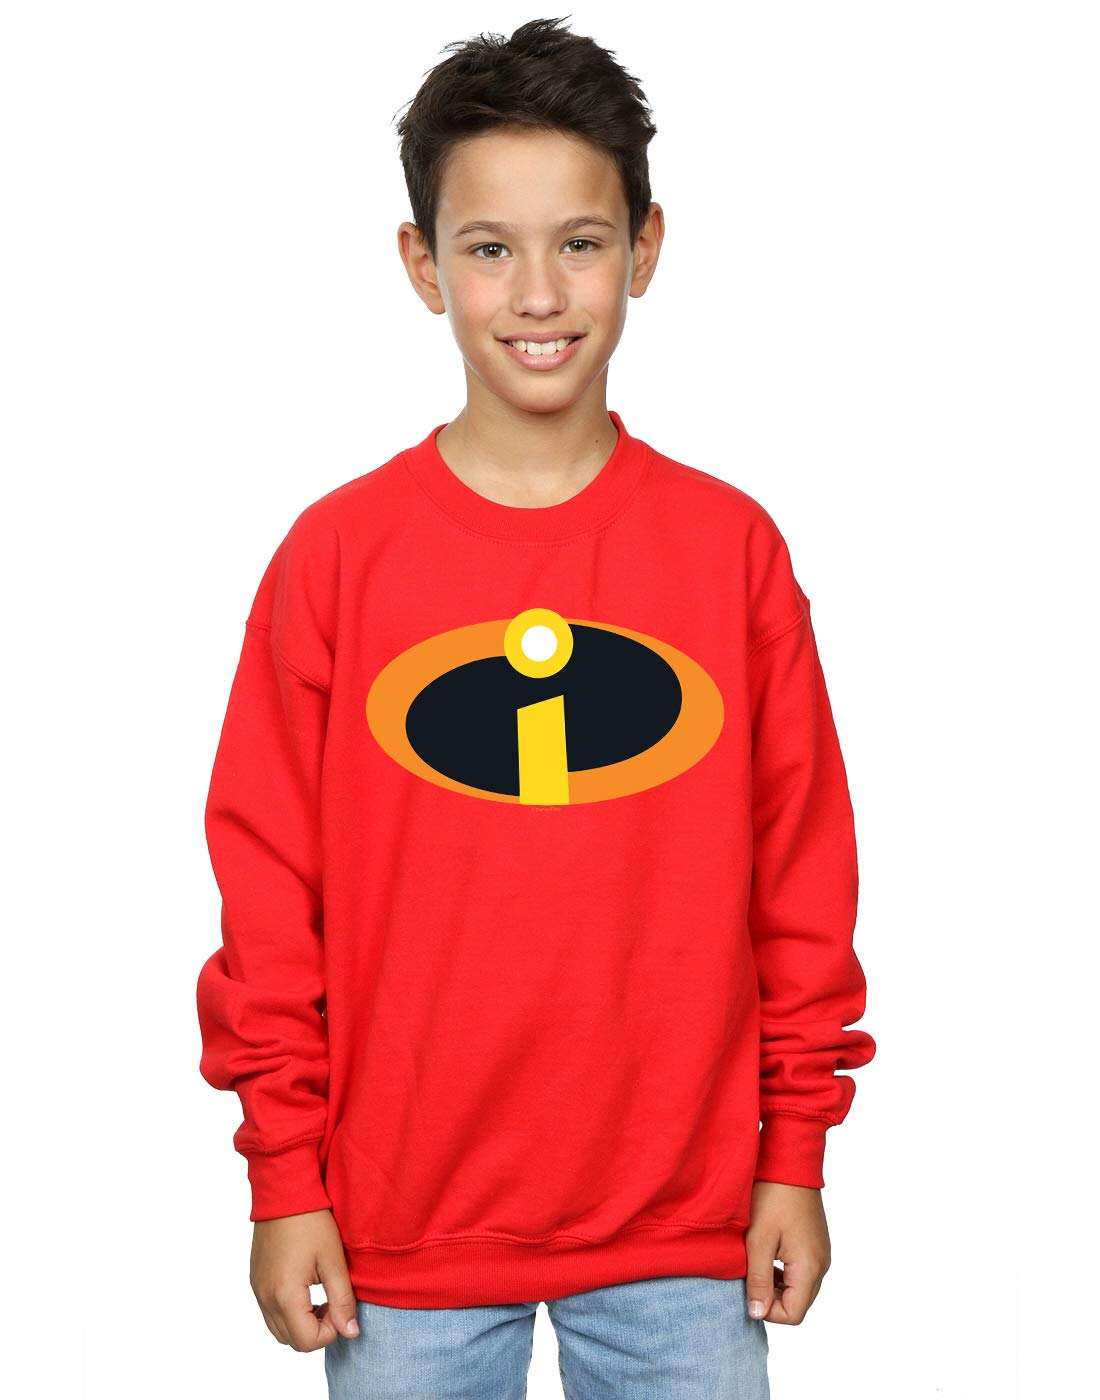 Disney Boys The Incredibles 2 Costume Logo Sweatshirt Absolute Cult